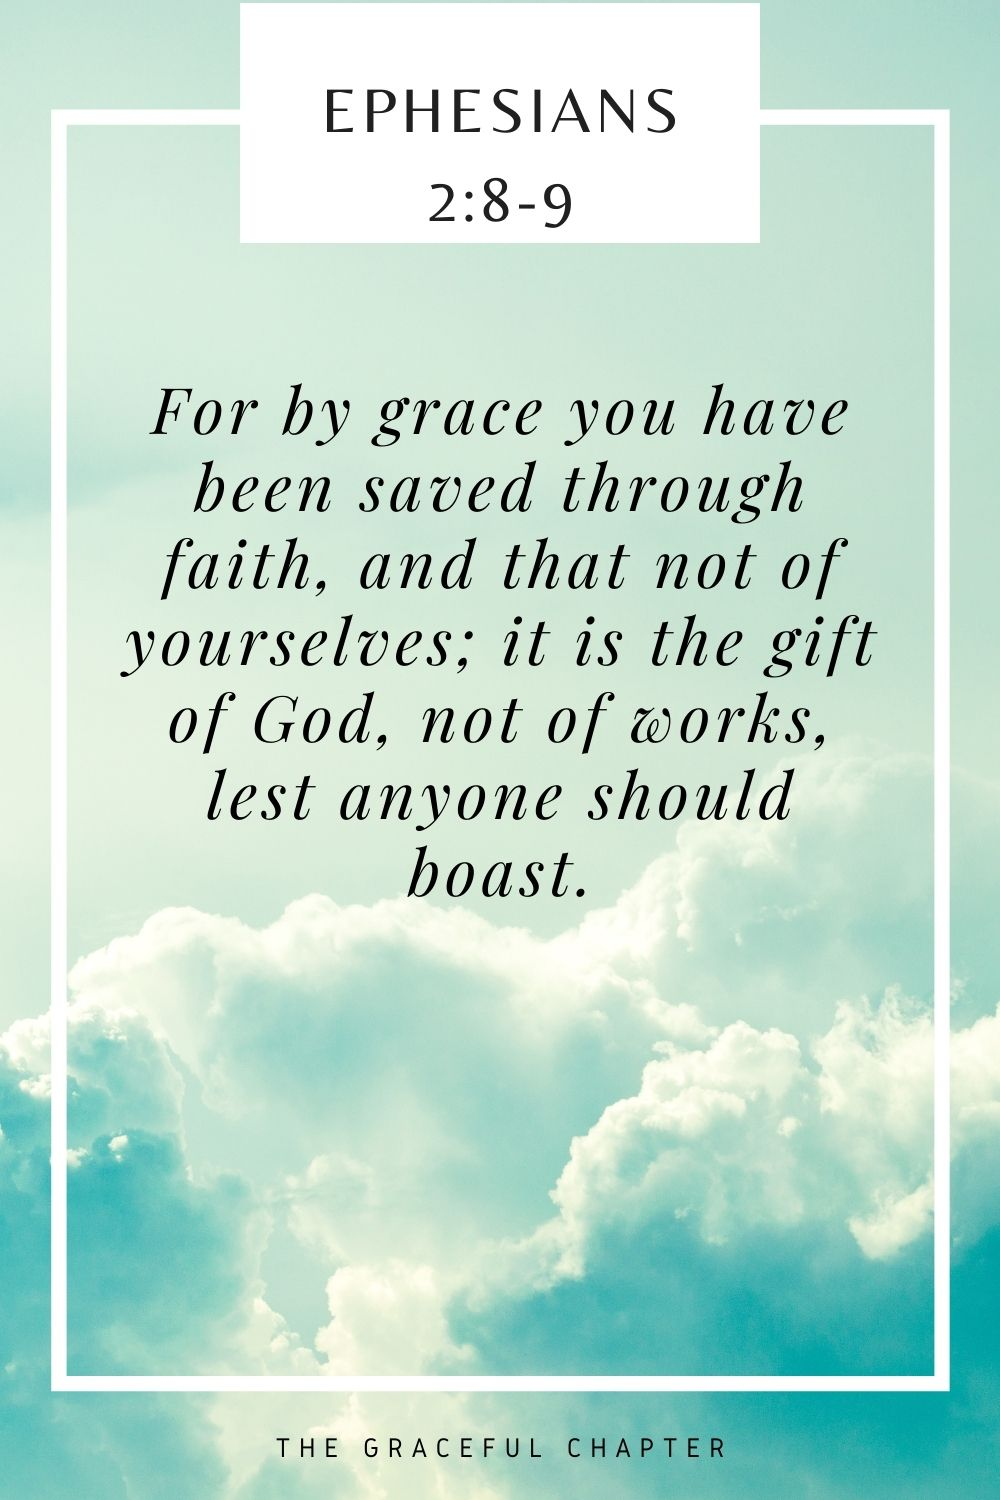 For by grace you have been saved through faith, and that not of yourselves; it is the gift of God, not of works, lest anyone should boast. Ephesians 2:8-9